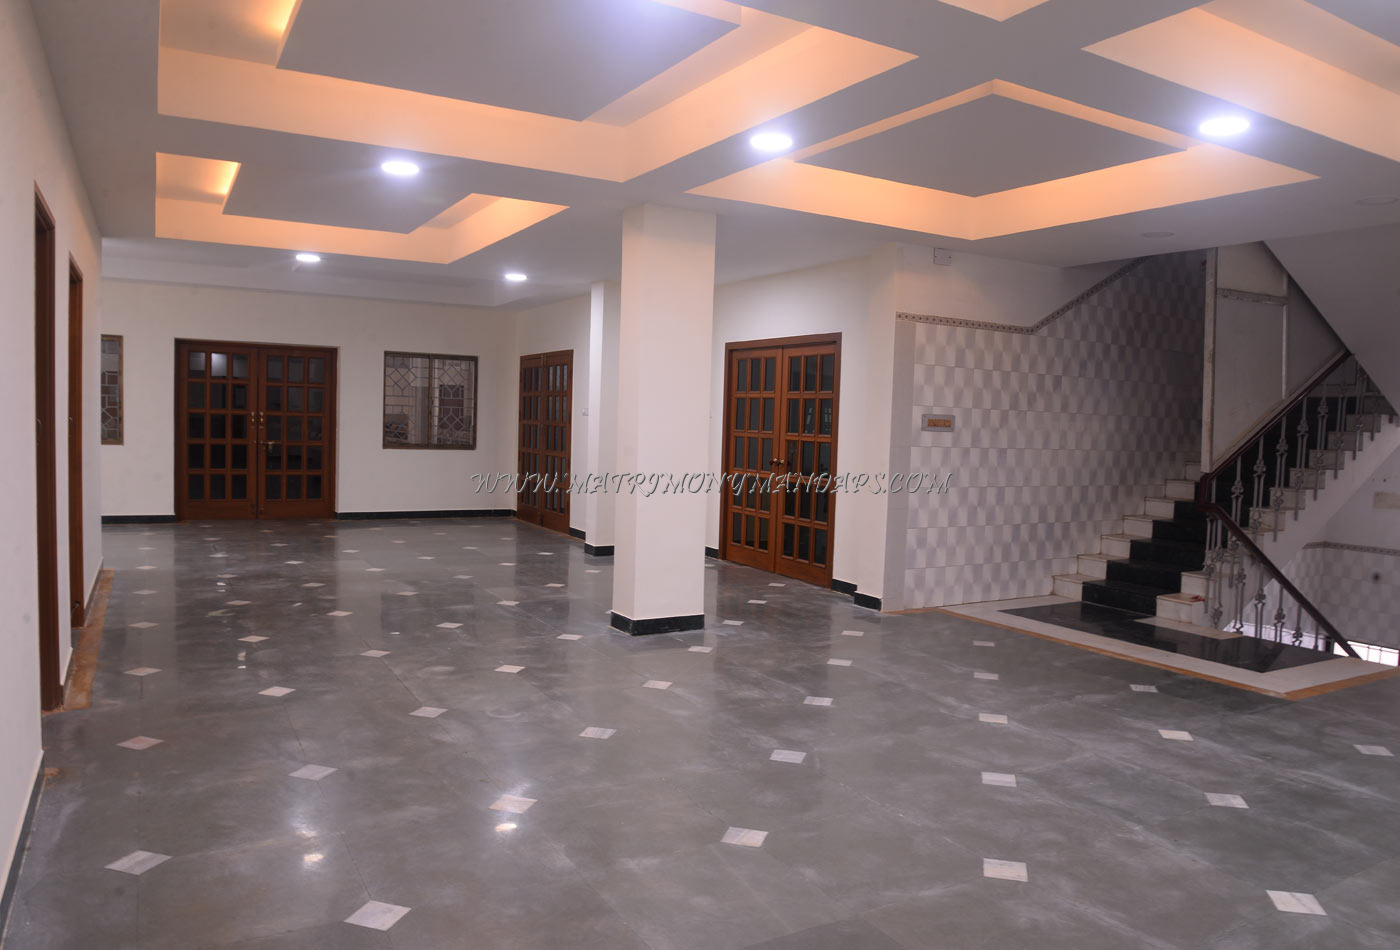 Find the availability of the SKV Mahal  (A/C) in Mogappair, Chennai and avail special offers